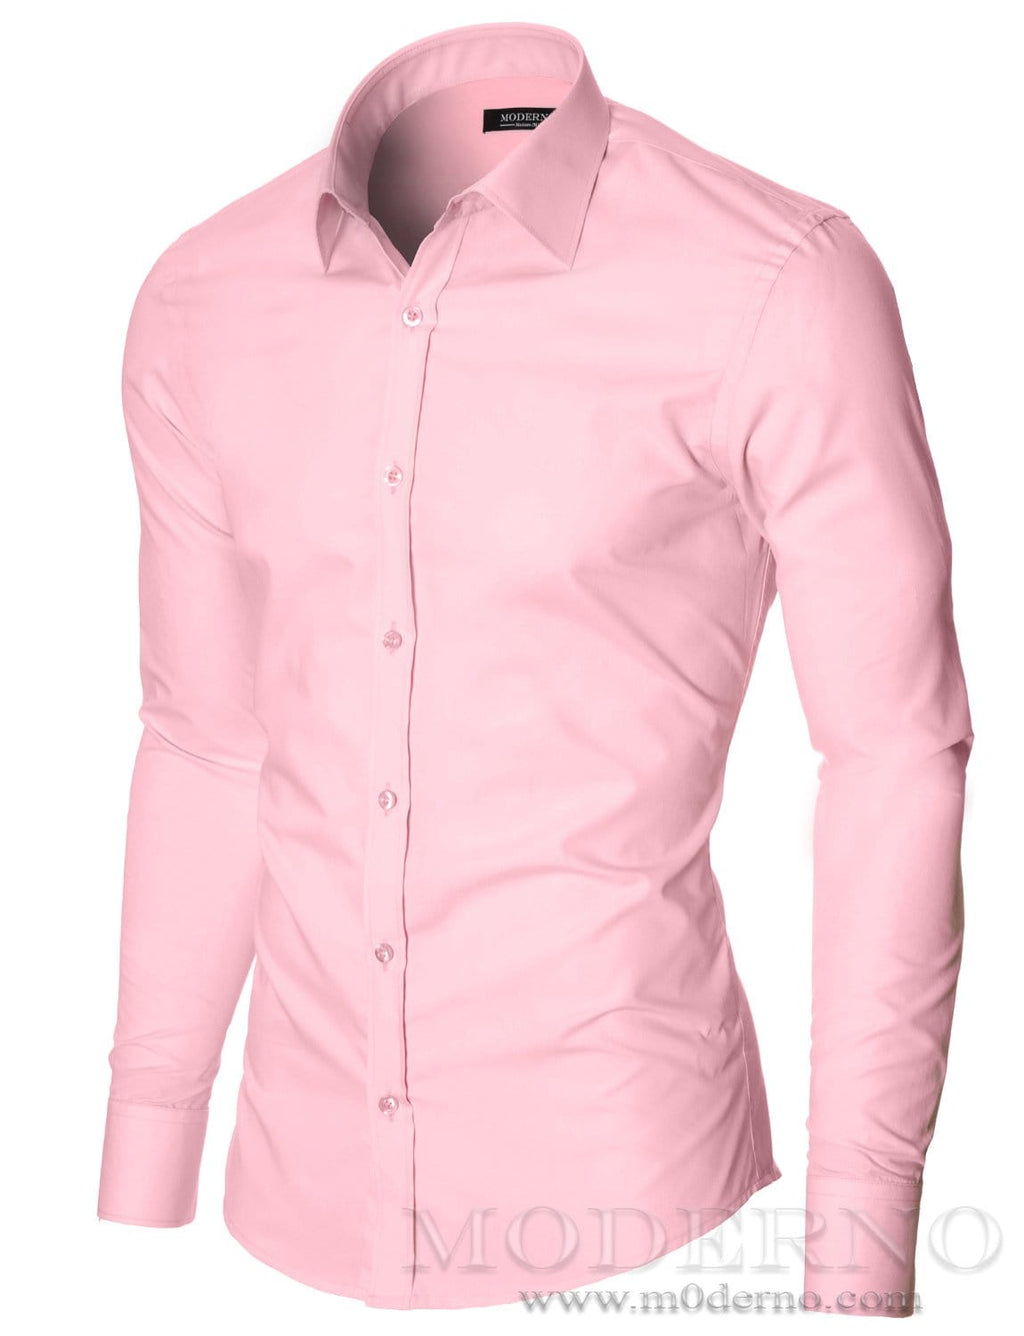 Slim Fit Dress Shirts For Men By Moderno